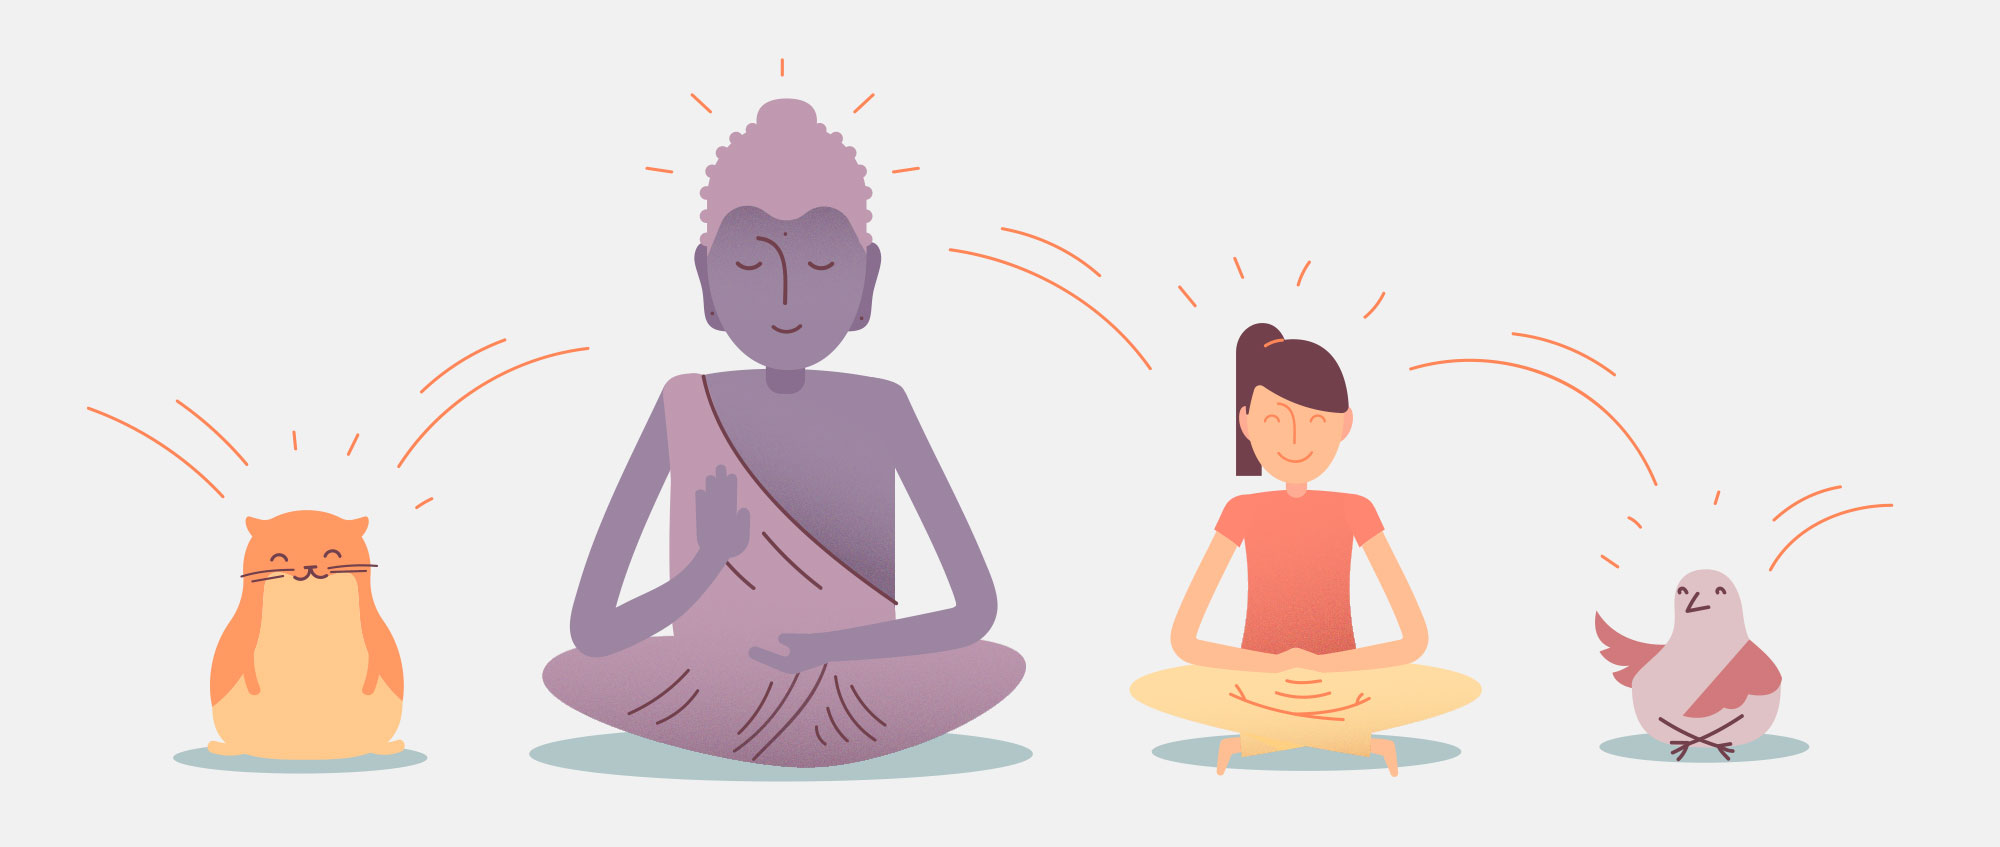 benefits of for. Meditation clipart positive body image